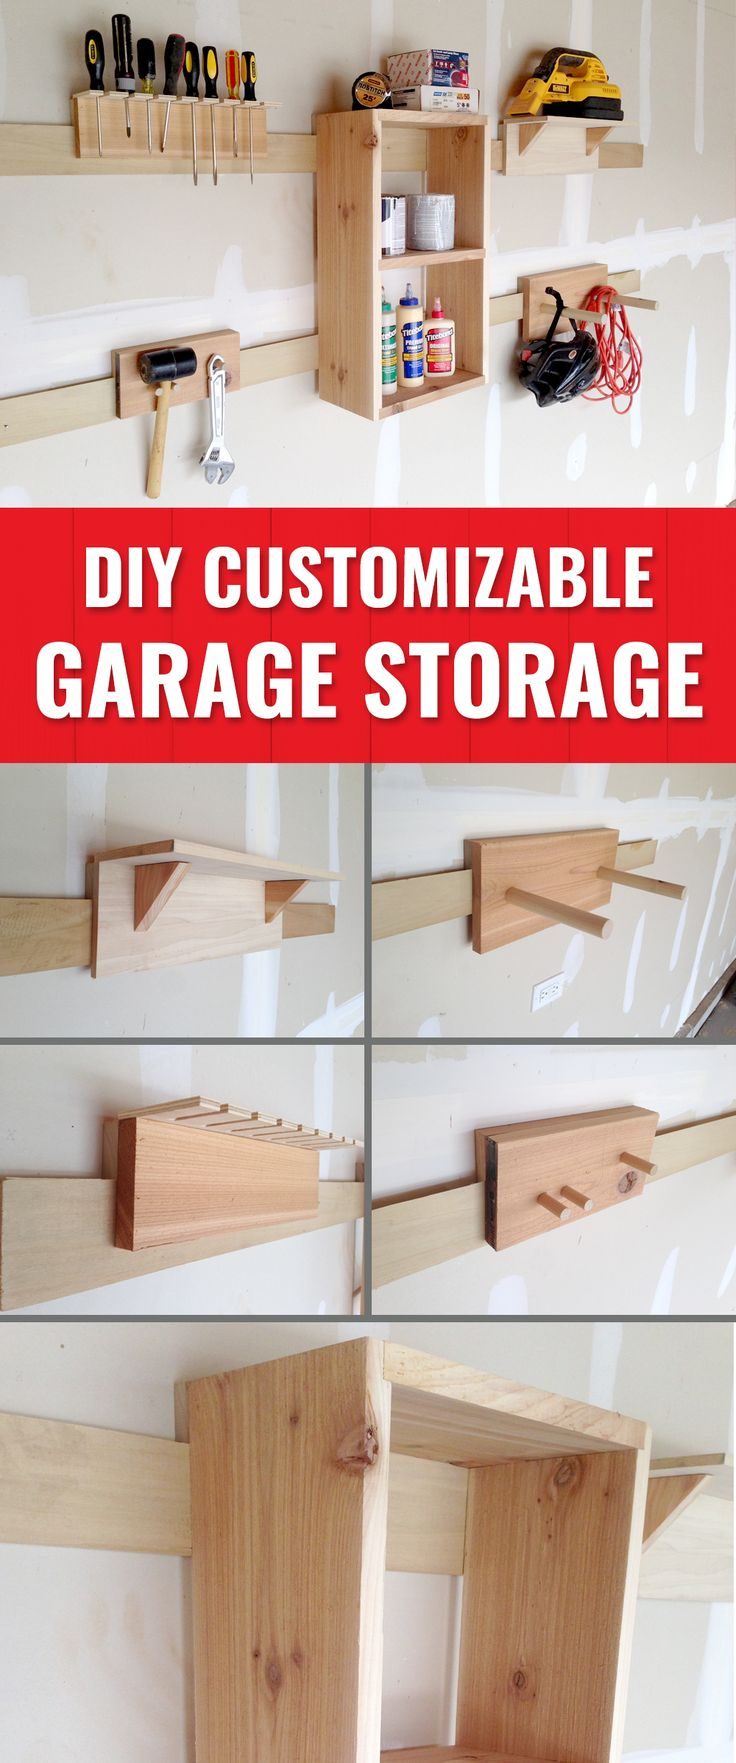 Keep your garage organized with these DIY, customizable storage solutions.